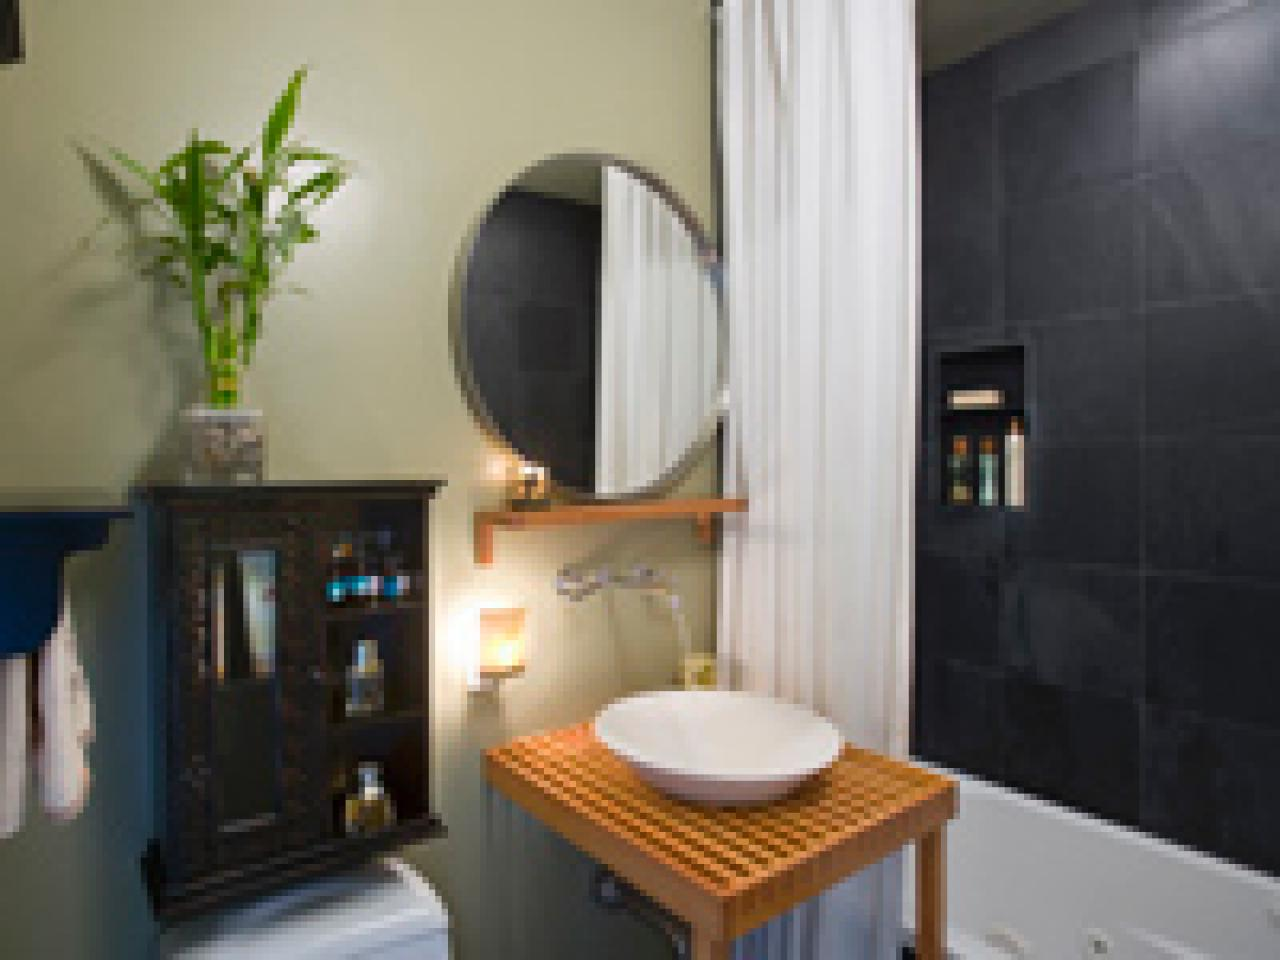 Bathroom Zen Design Ideas choose natural colors for your zen bathroom | hgtv